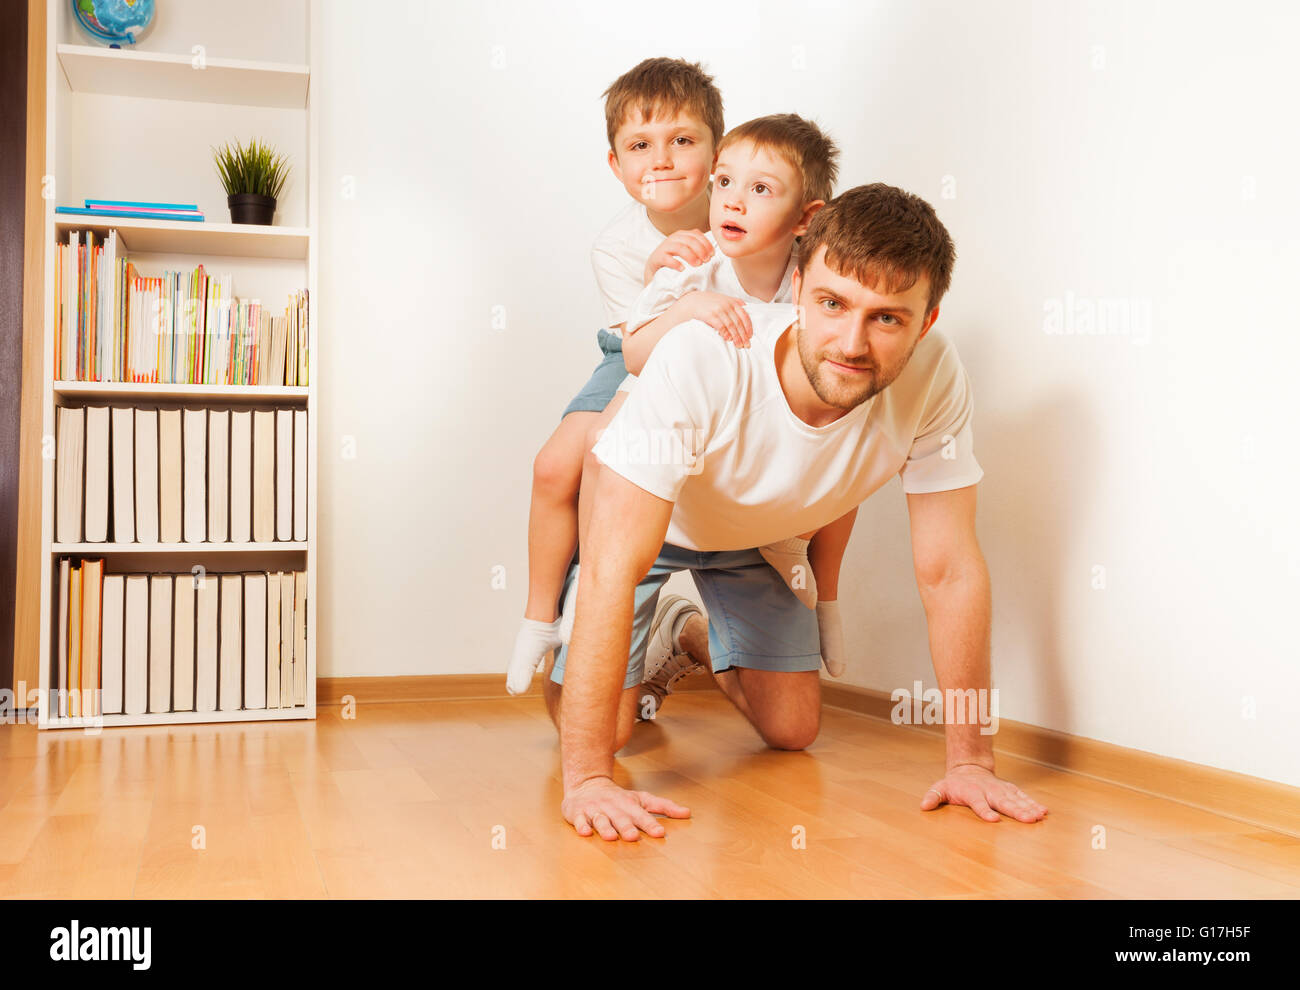 Father giving his two sons piggy back ride - Stock Image